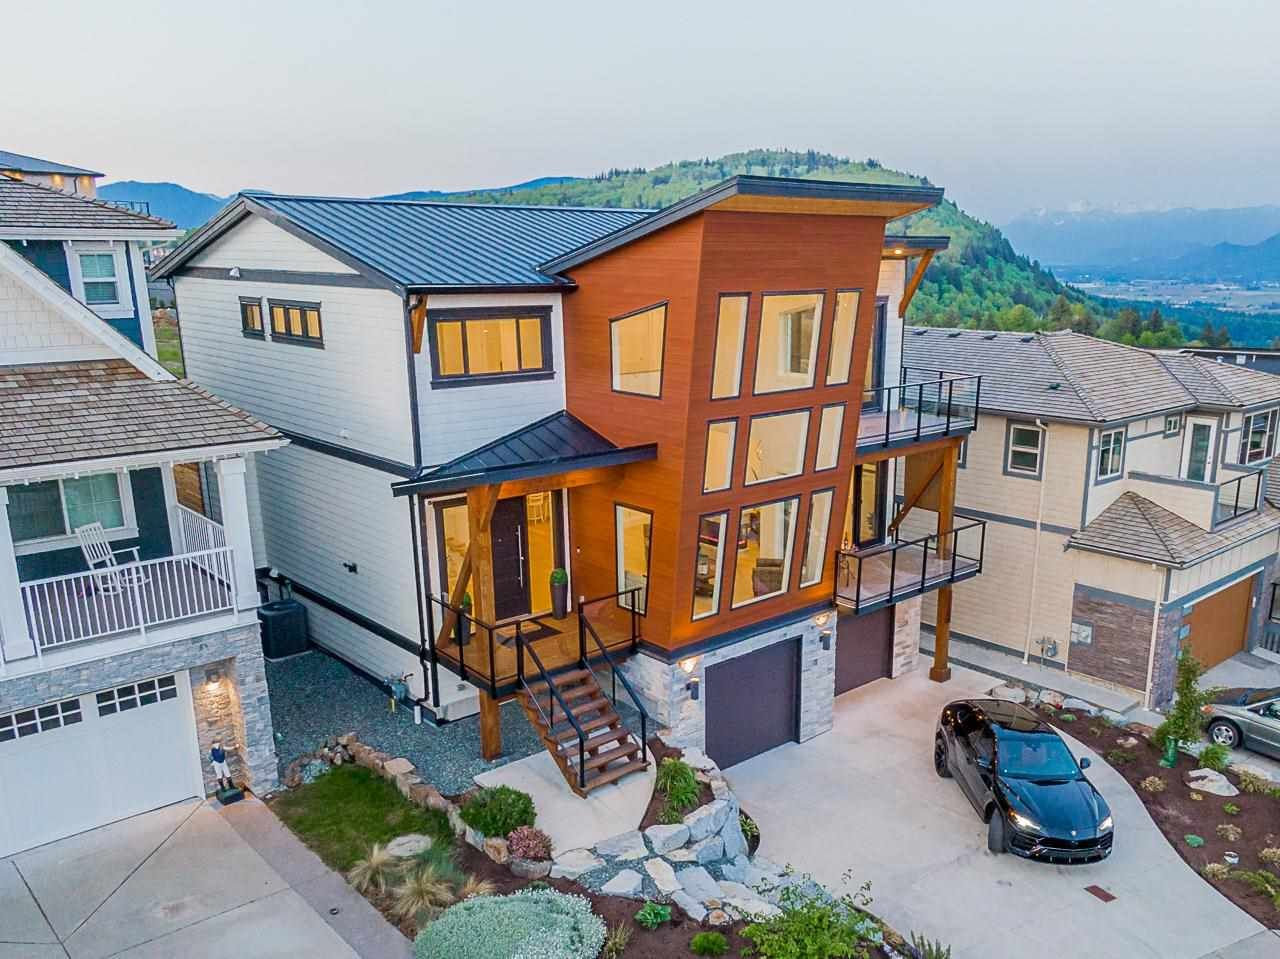 """Photo 2: Photos: 35489 EAGLE SUMMIT Drive in Abbotsford: Abbotsford East House for sale in """"Eagle Mountian"""" : MLS®# R2578749"""